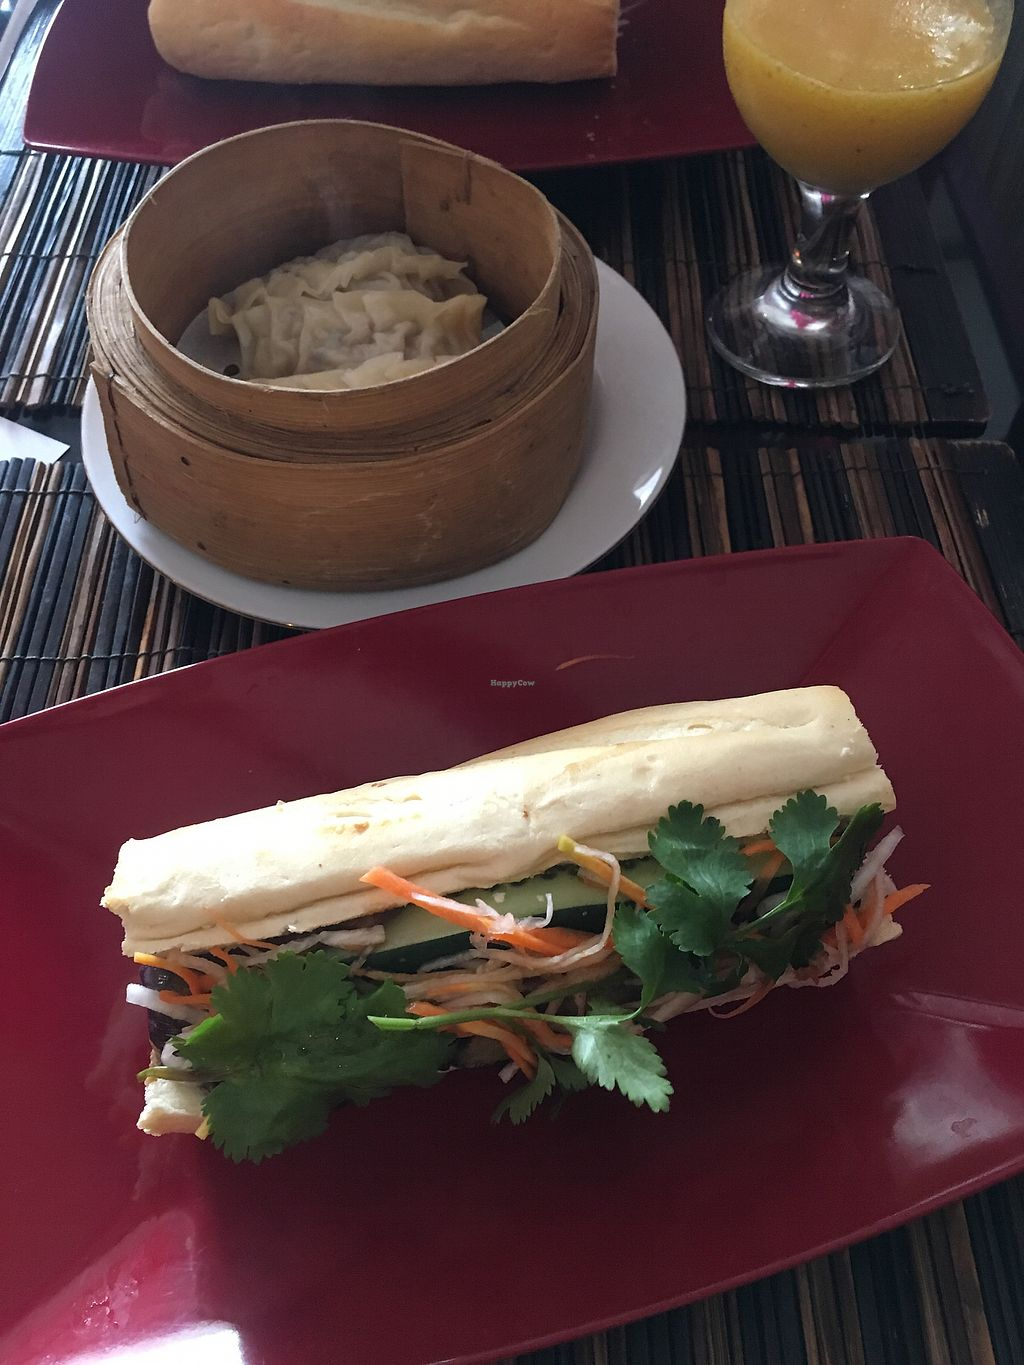 """Photo of Indochine Restaurant  by <a href=""""/members/profile/ShannonTran"""">ShannonTran</a> <br/>Aubergine Bahn mi <br/> February 1, 2018  - <a href='/contact/abuse/image/110836/353410'>Report</a>"""